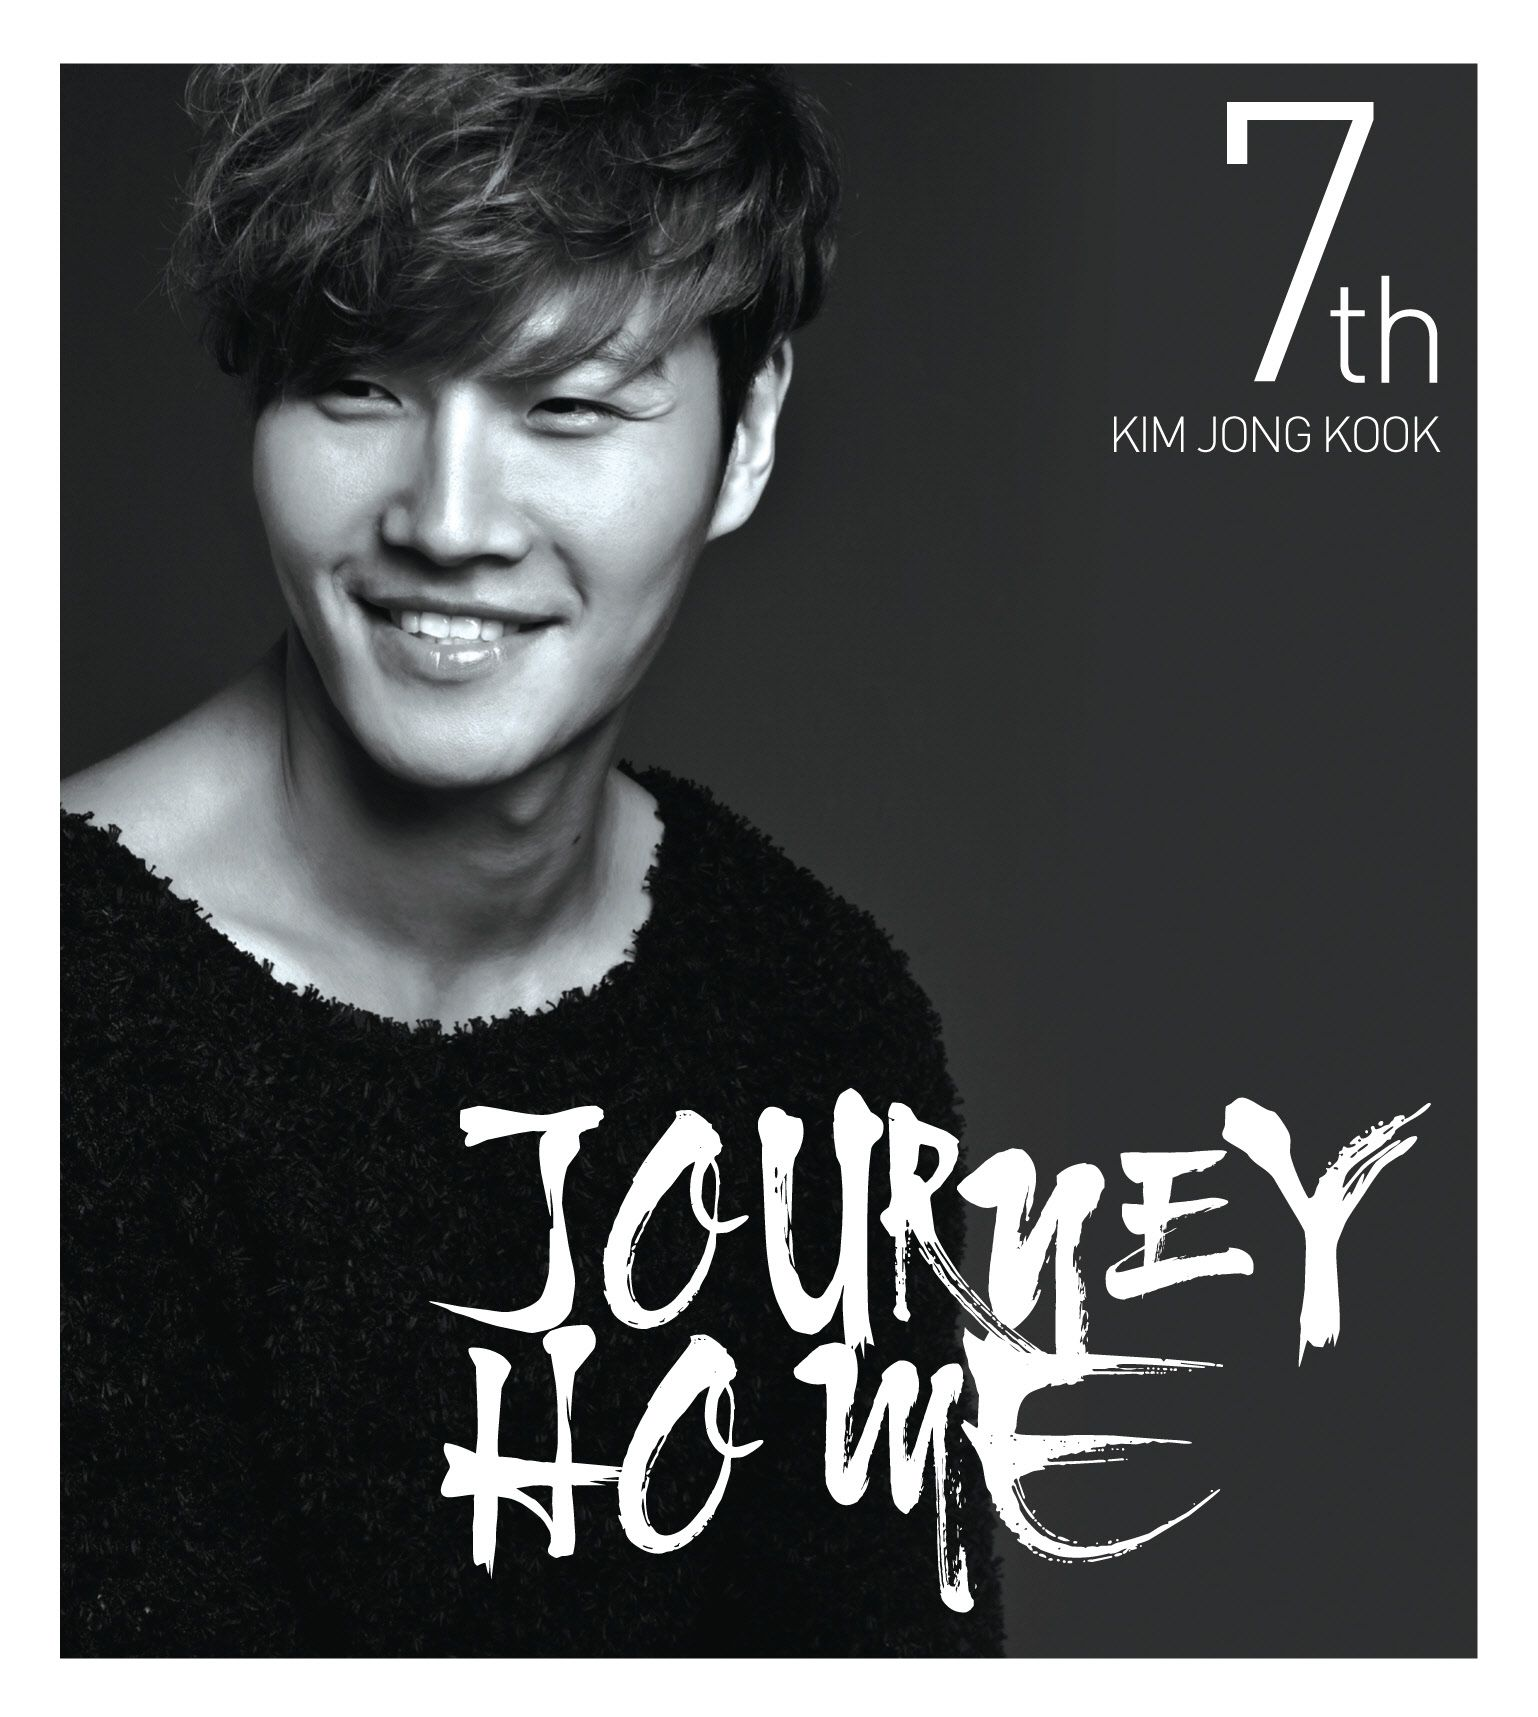 [Album] Kim Jong Kook - Journey Home [Vol. 7]